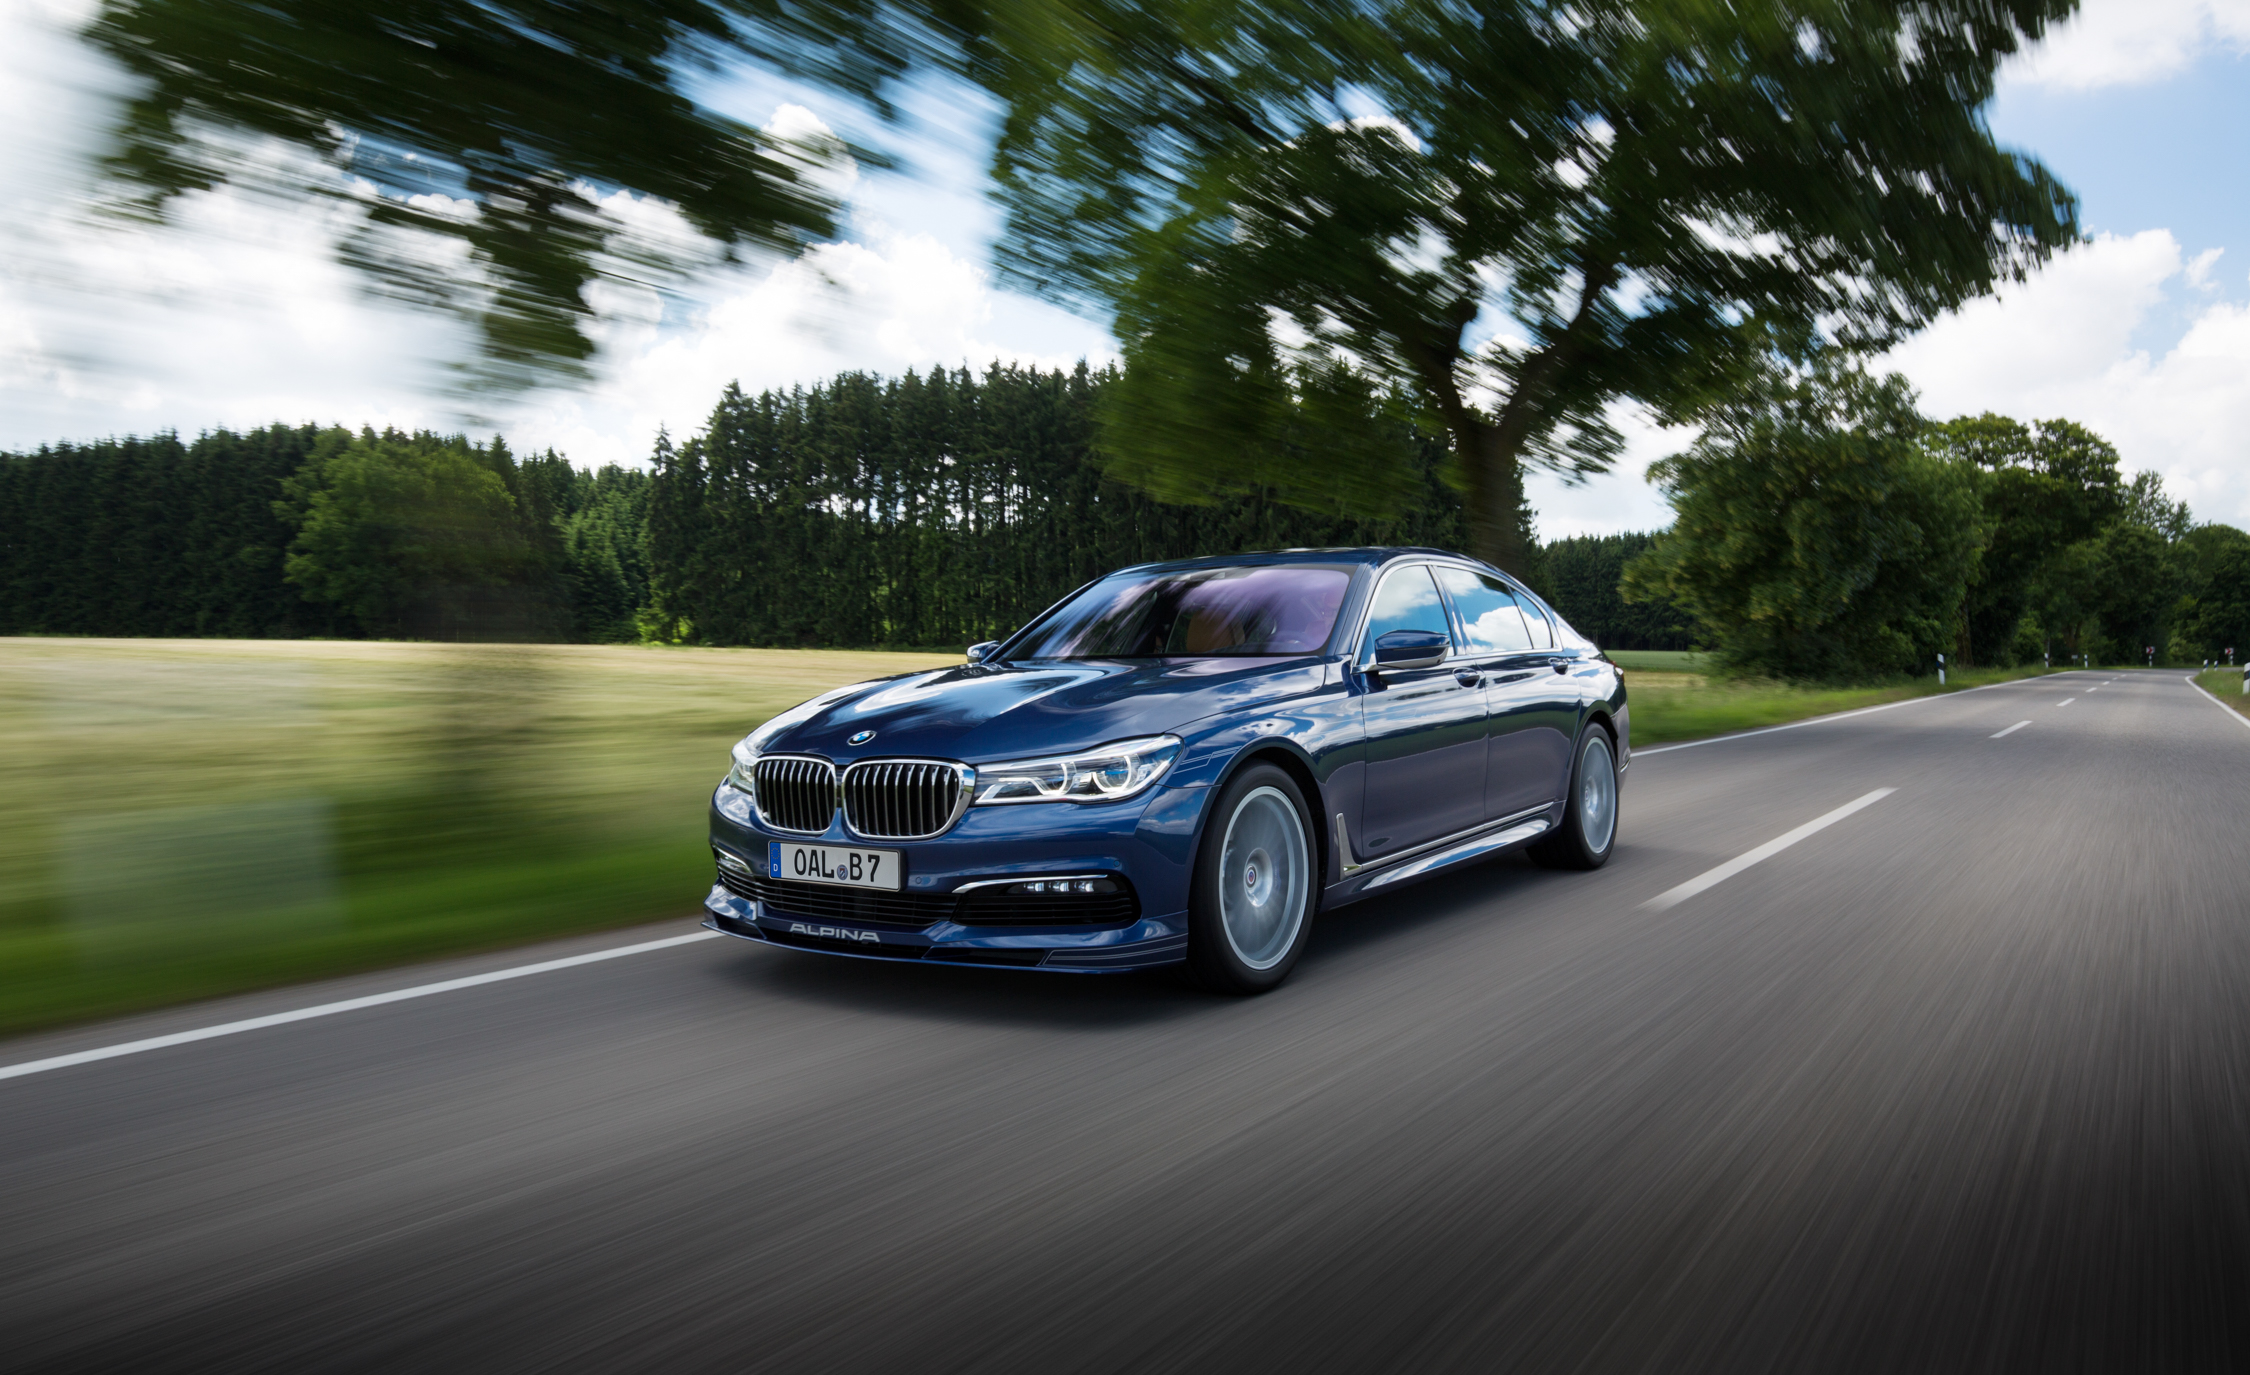 2017 BMW Alpina B7 Blue Metallic (View 45 of 45)